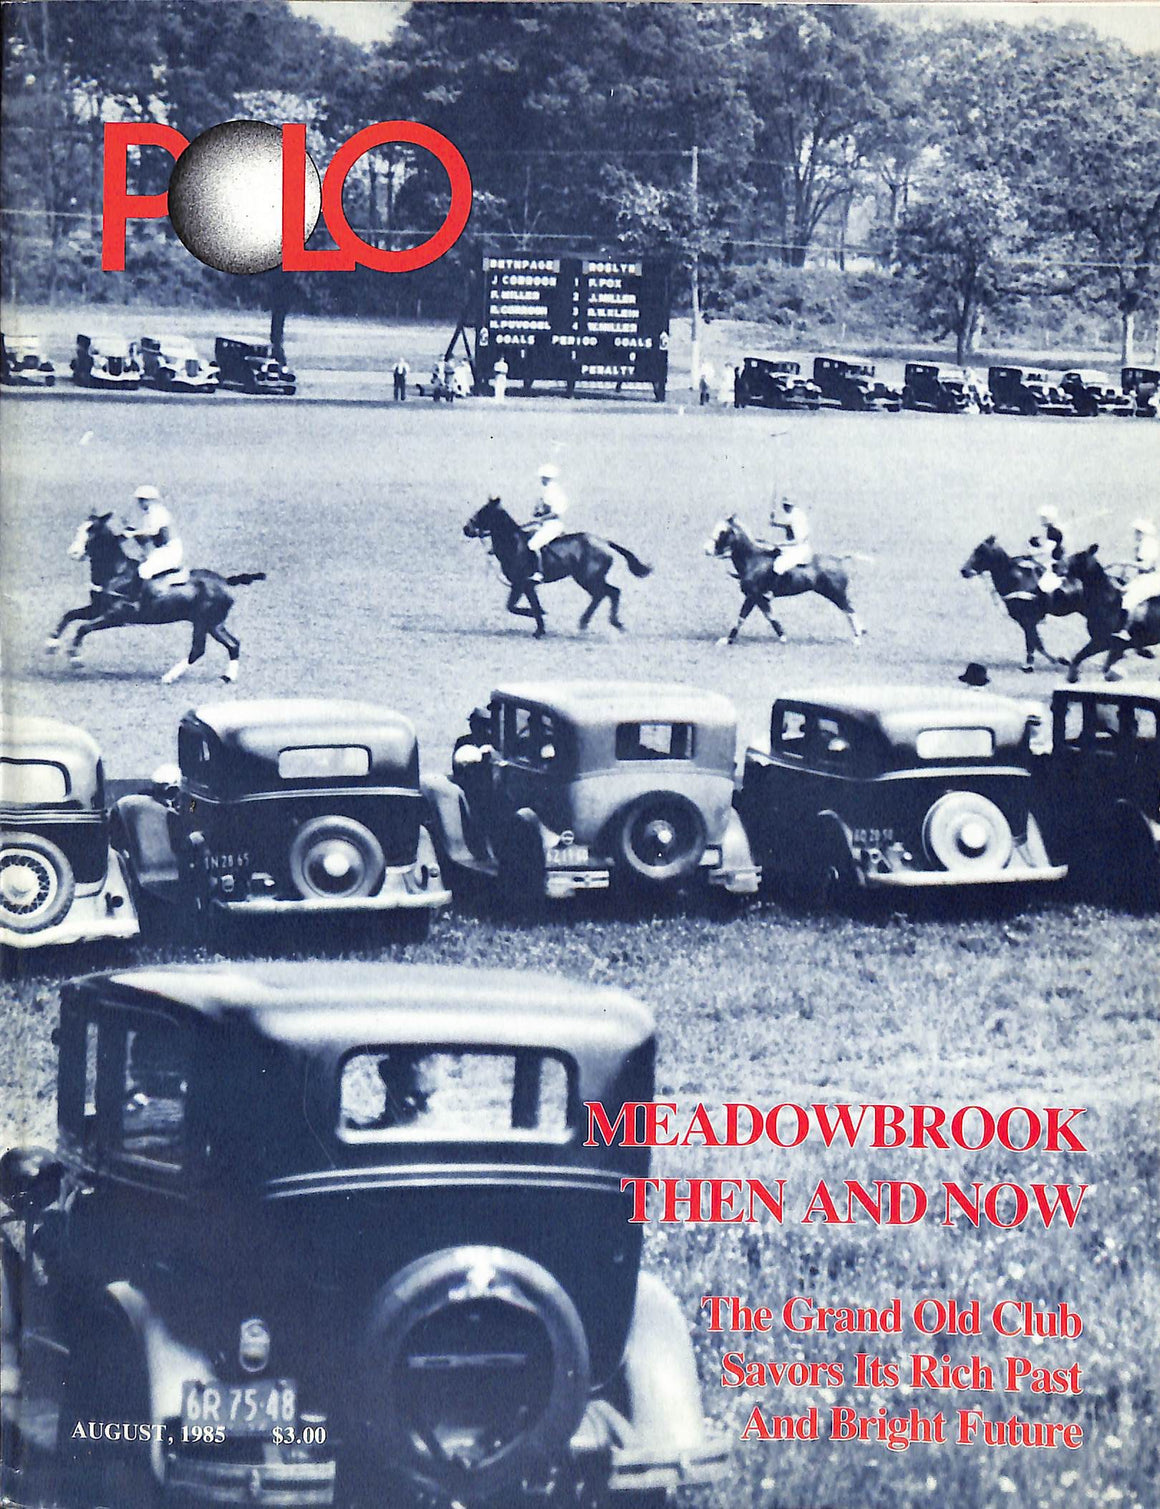 """Polo Magazine August, 1985 Meadowbrook Then and Now"""